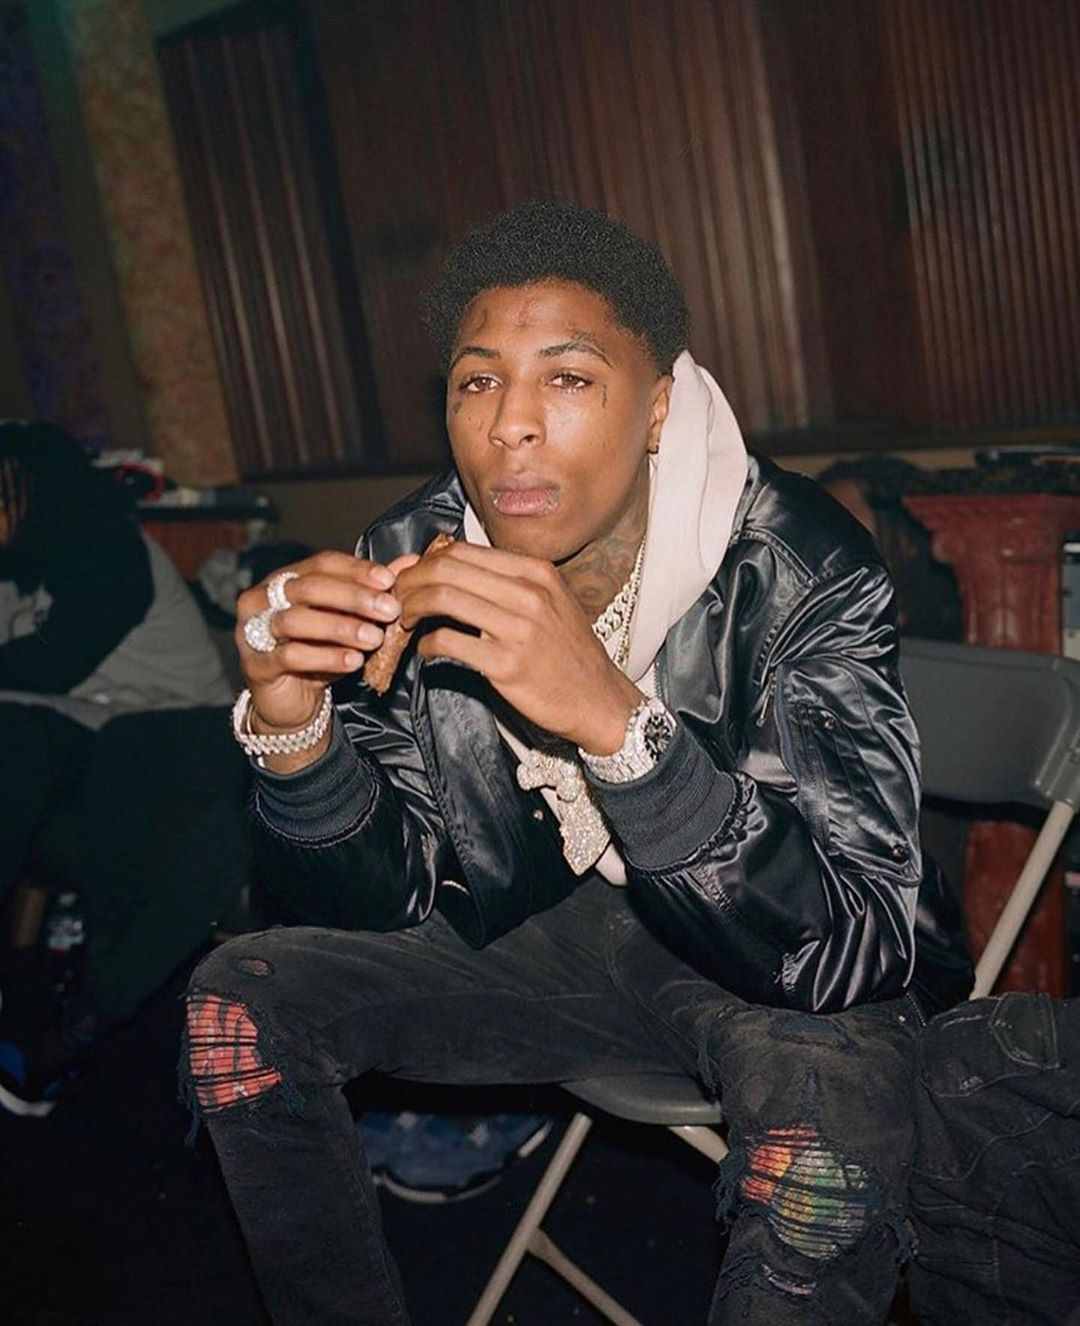 Image Result For Nba Youngboy And Draco His Son Wallpaper Nba Outfit Cute Rappers Nba Baby